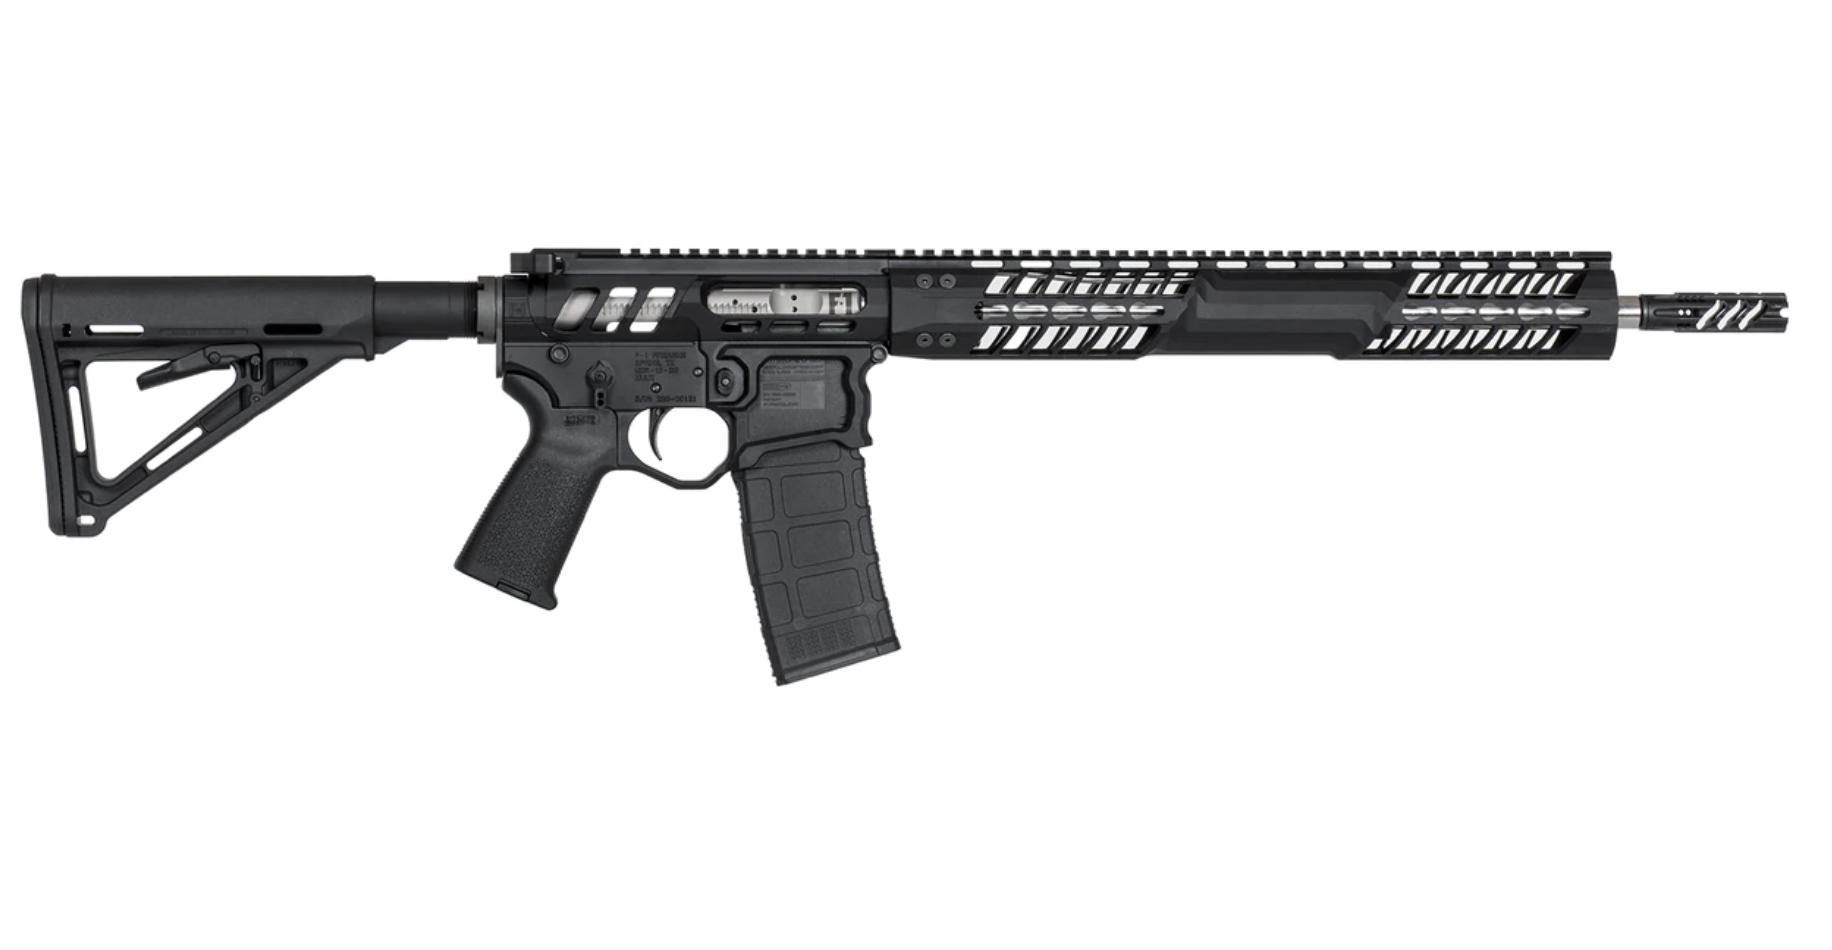 F1 Firearms UDR-15 3g Image